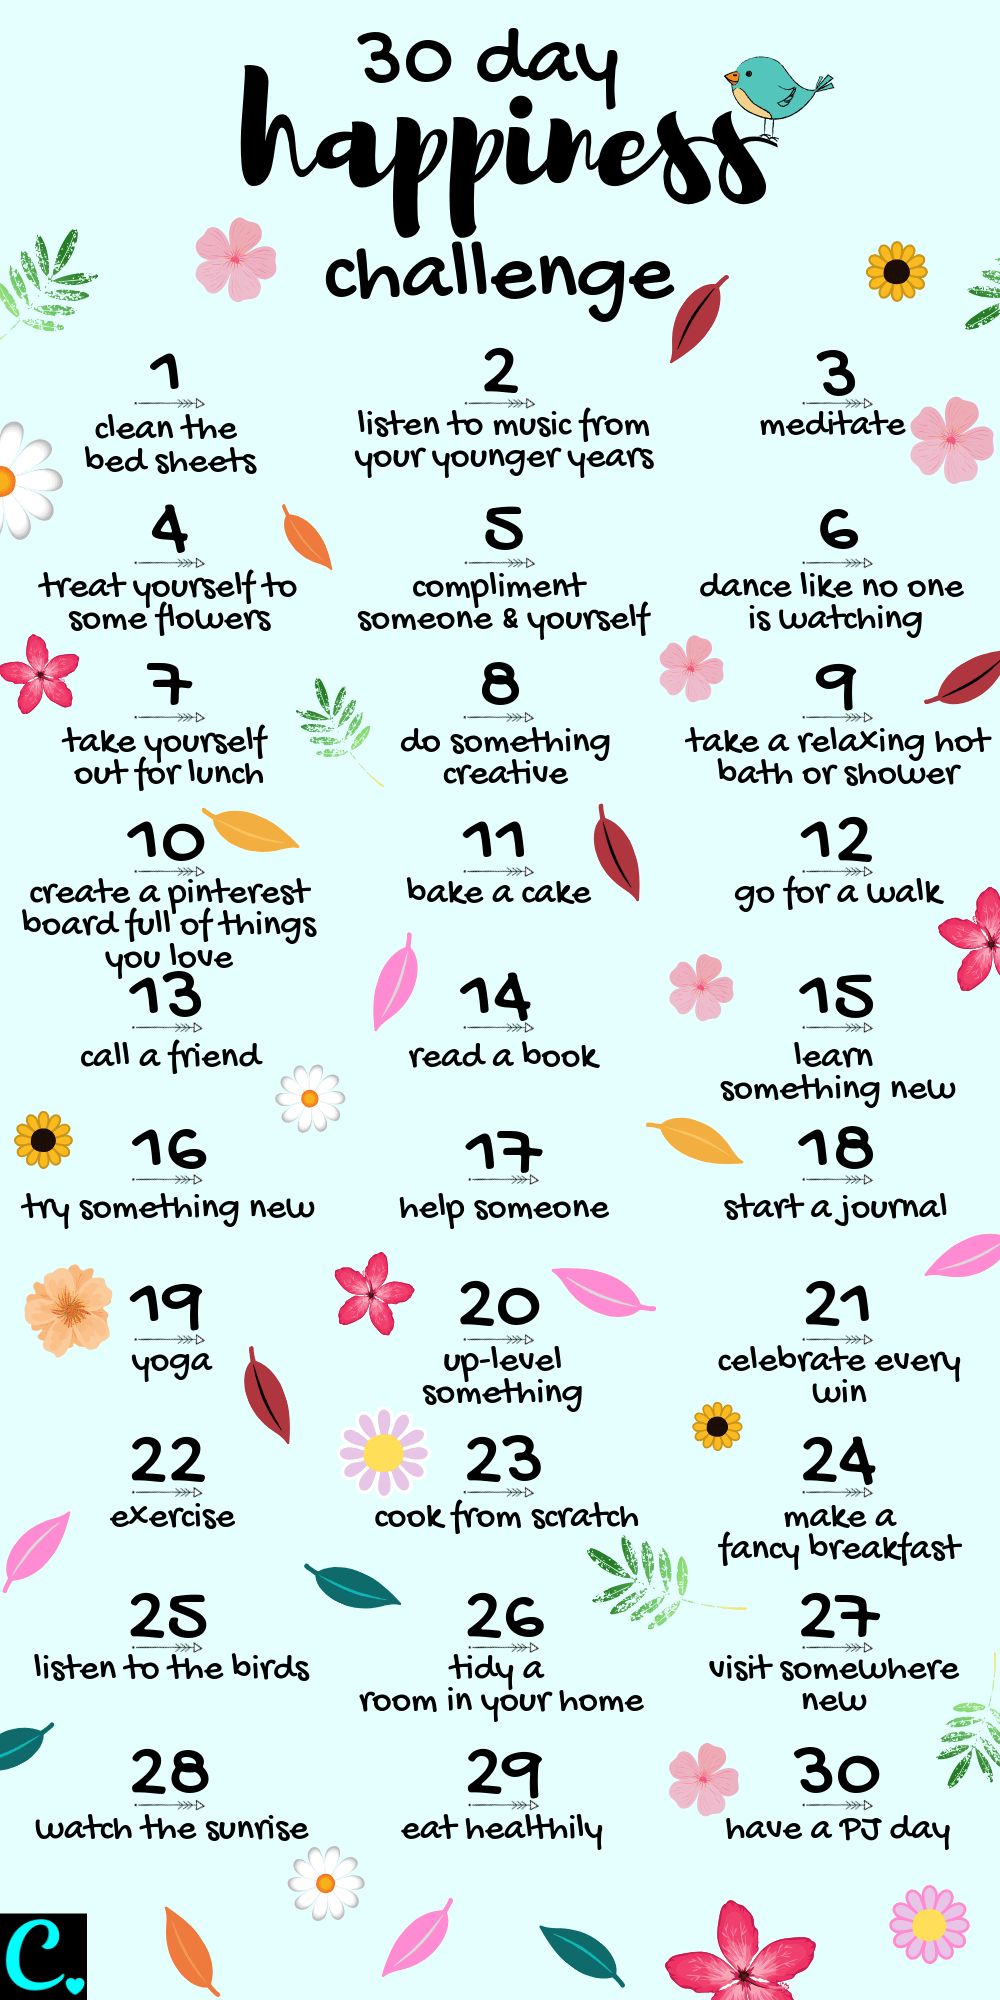 30 Day Happiness Challenge Infrographic  how to be happy  how to increase happiness  self care  personal development  how to be happy in life